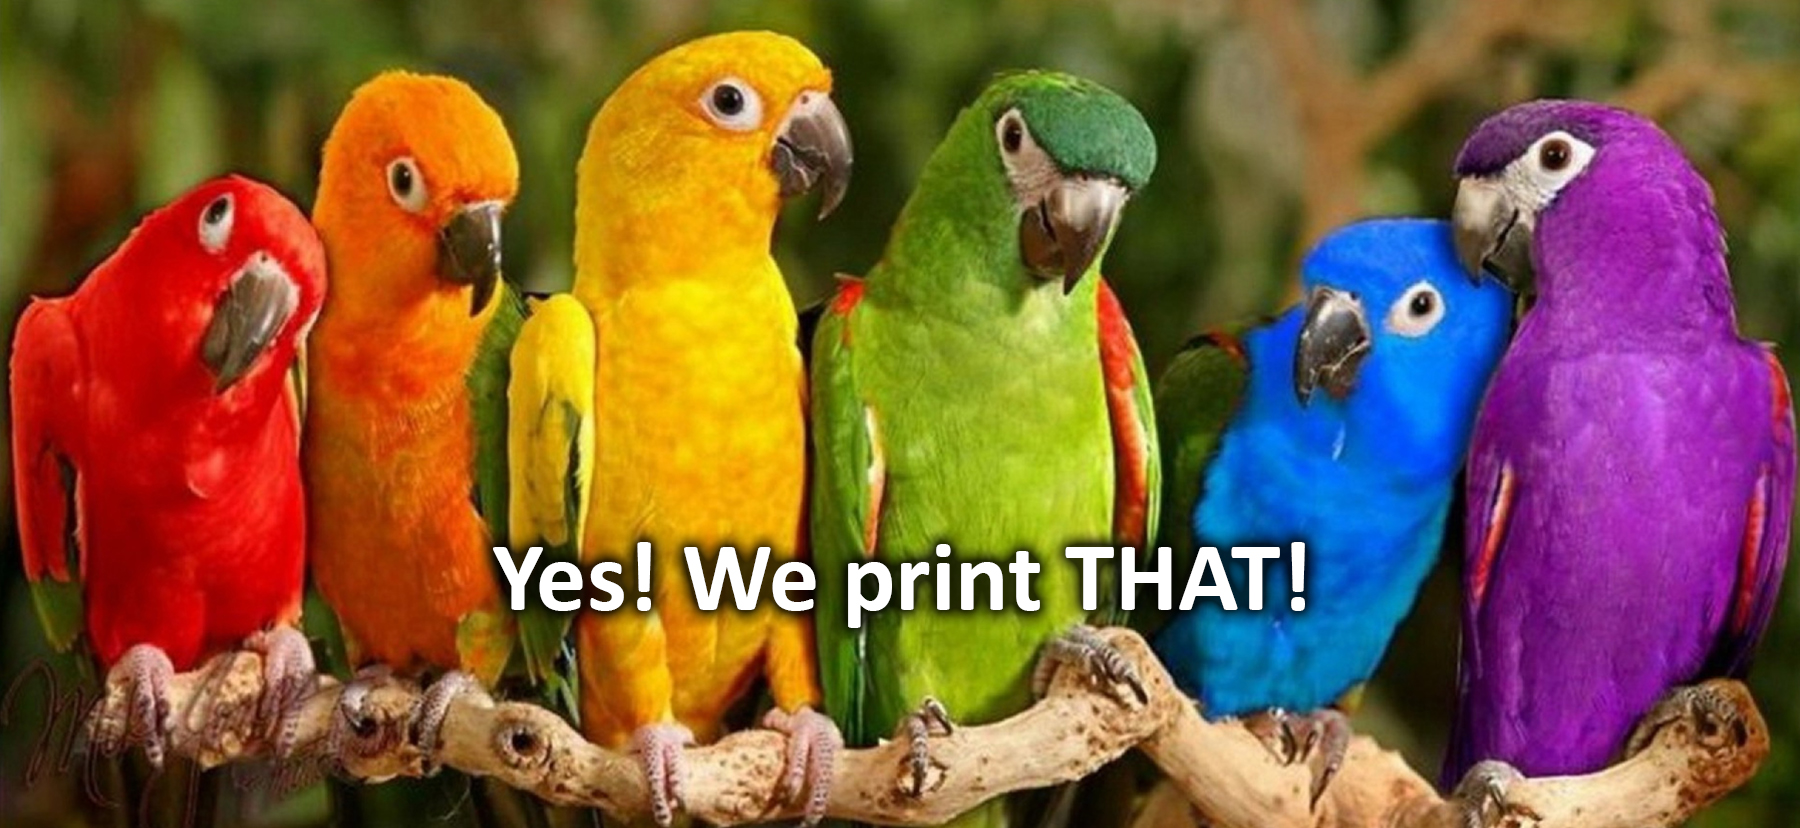 We Ink Everything…Well almost. Since 1932, Cann Printing has been producing the highest quality printing. Attention to every detail results in flawless craftsmanship. The greatest service provides customer confidence. See why our customers stay with us for decades. Cann is the art of fine printing!